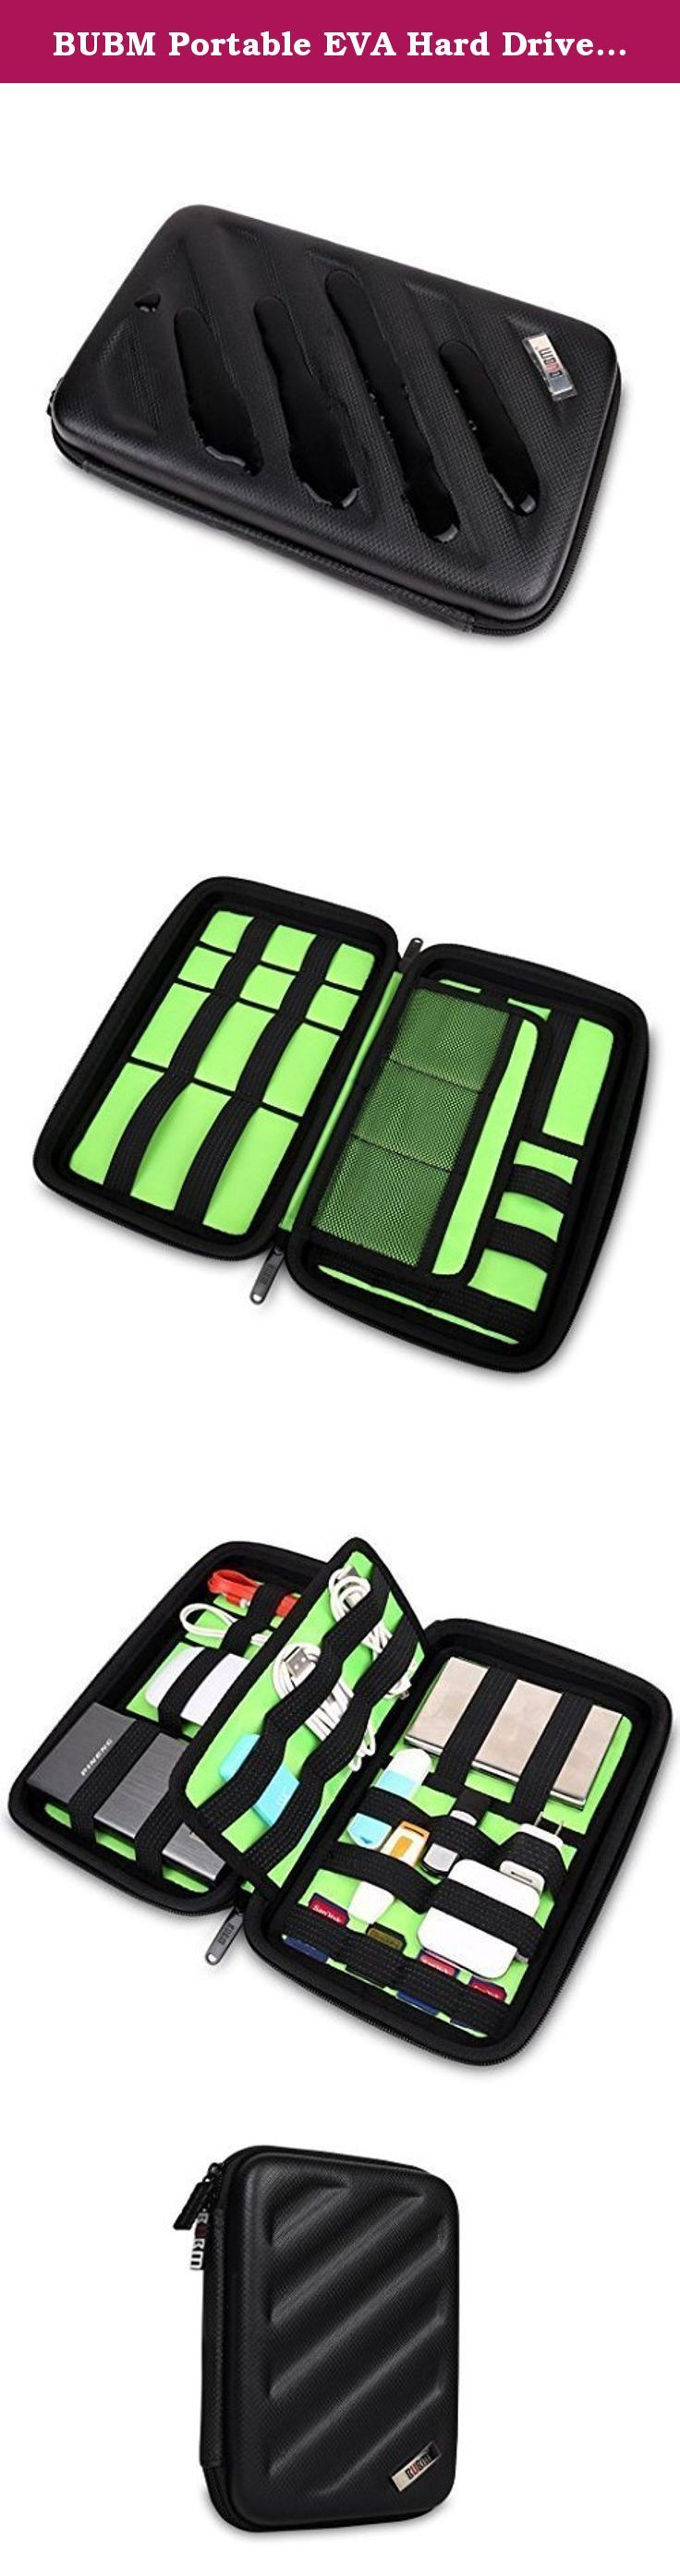 BUBM Portable EVA Hard Drive Case Travel Organizer for Electronics (1 Black Large). EVA bag store a lot of important information relevant to you,it is to our life bring infinite convenience,and BUBM you can bring endless care for it,because we build strong to protect the hara disk pack BUBM EVA,not only hope that it will be your daily love,the more hope that you can love hand in it. Product Features: 1.Made of EVA material for superstrong water-proof effect, durable, semi-rigid exterior…